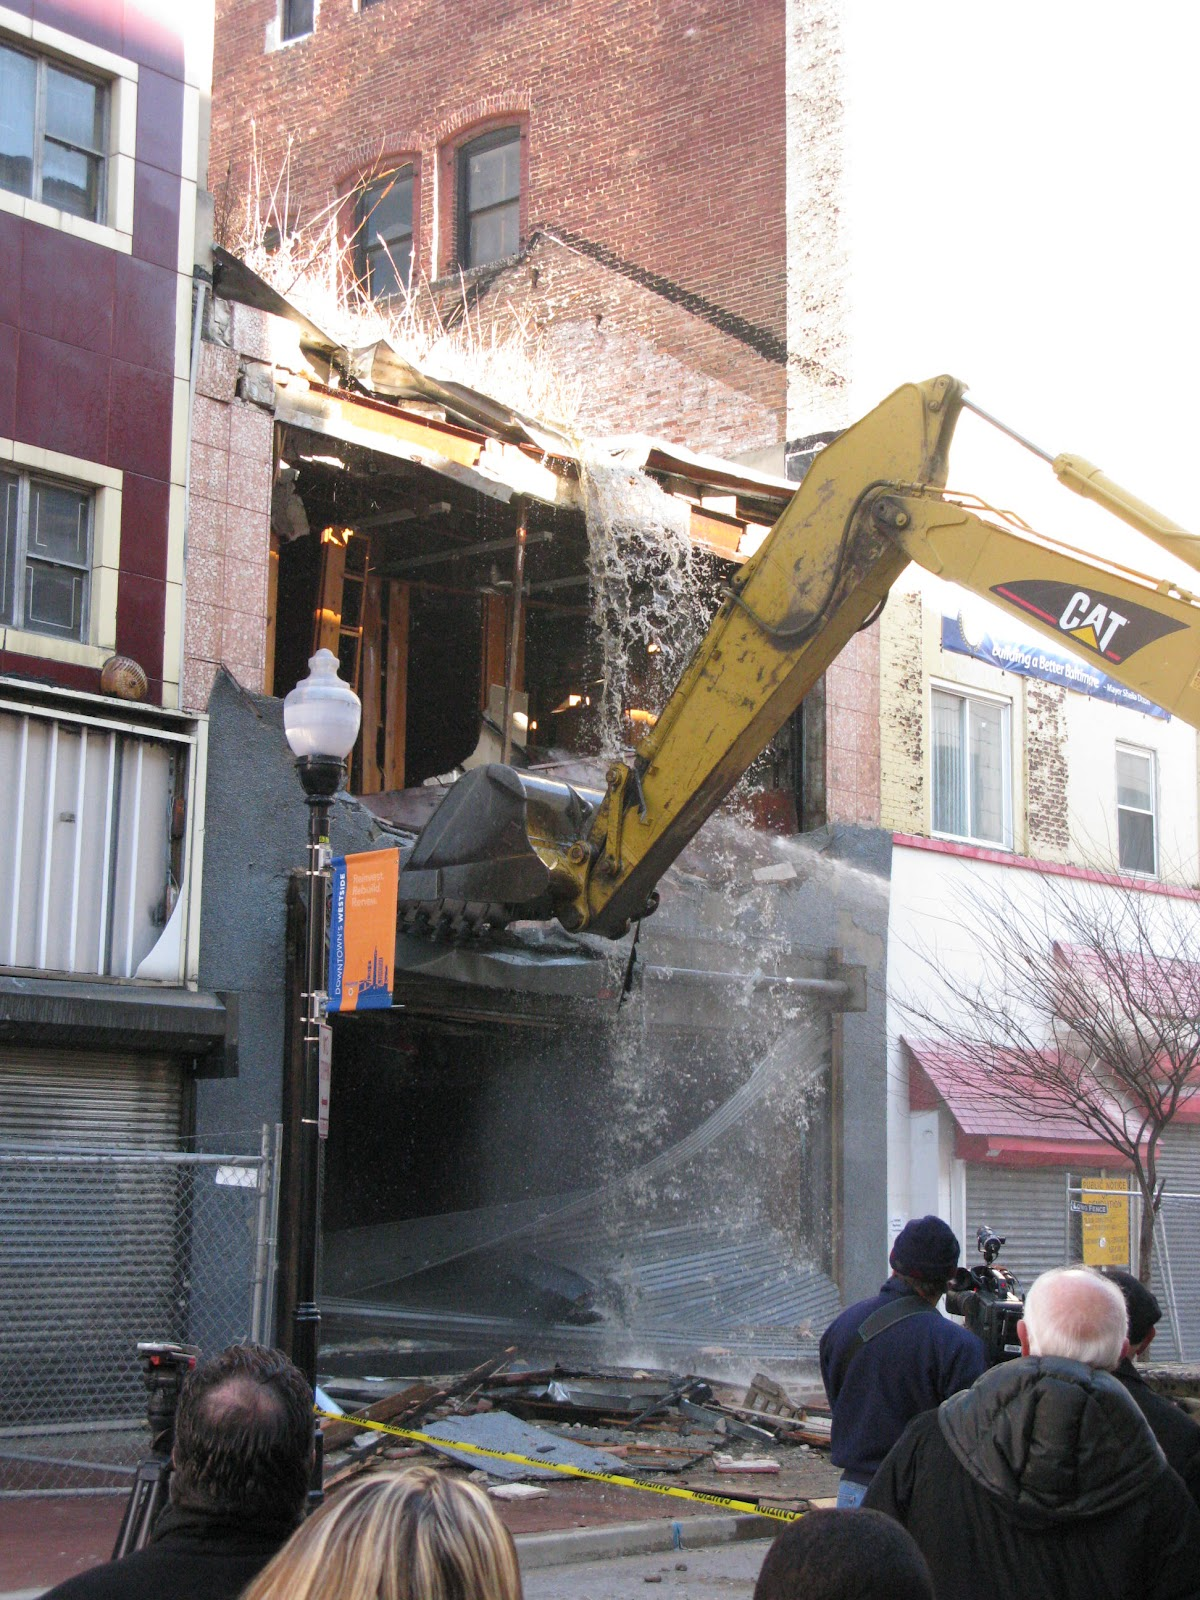 Officials summoned the media to watch a building get demolished in the Weinberg block, near the Superblock. (Photo by Klaus Philipsen)